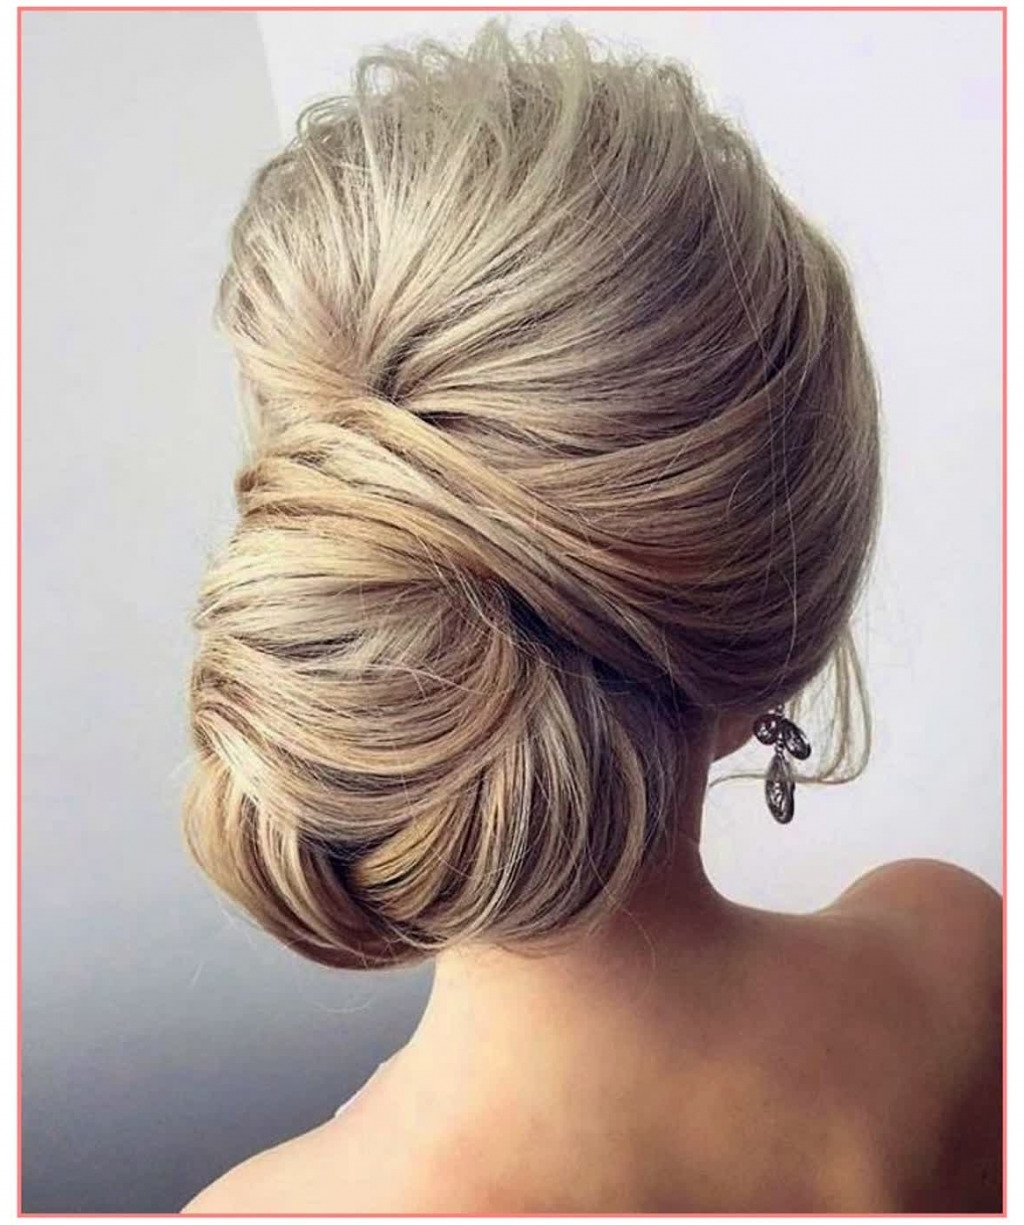 Fashionable Wedding Hairstyles To The Side Intended For Beautiful Hairstyles Wedding Hairstyles Side Chignon – Best (View 5 of 15)